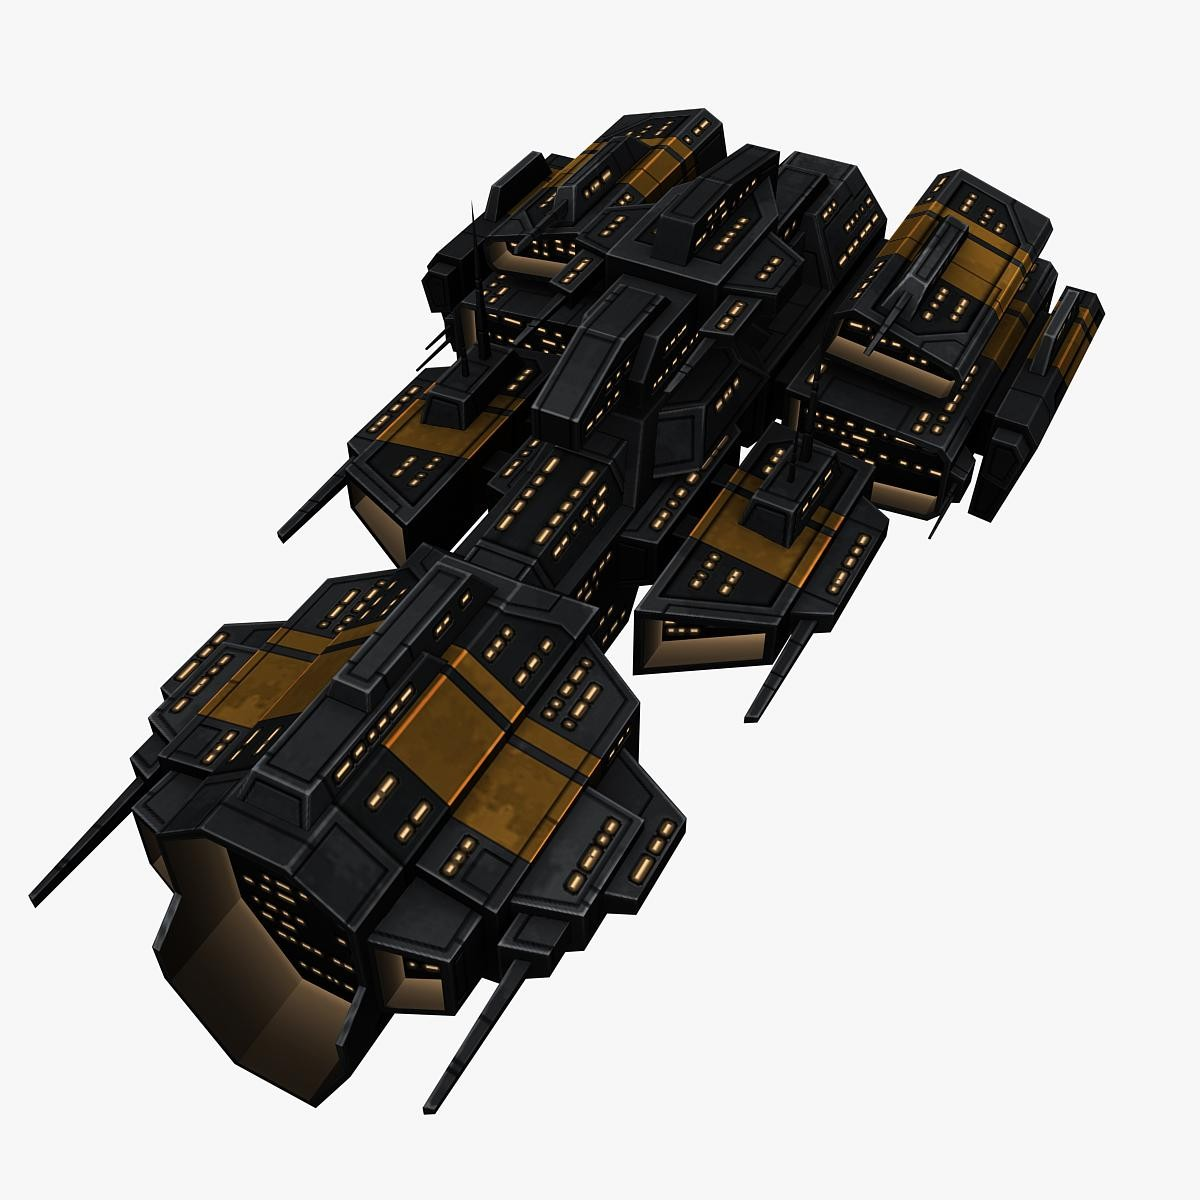 space_battleship_4_upgraded_preview_0.jpg